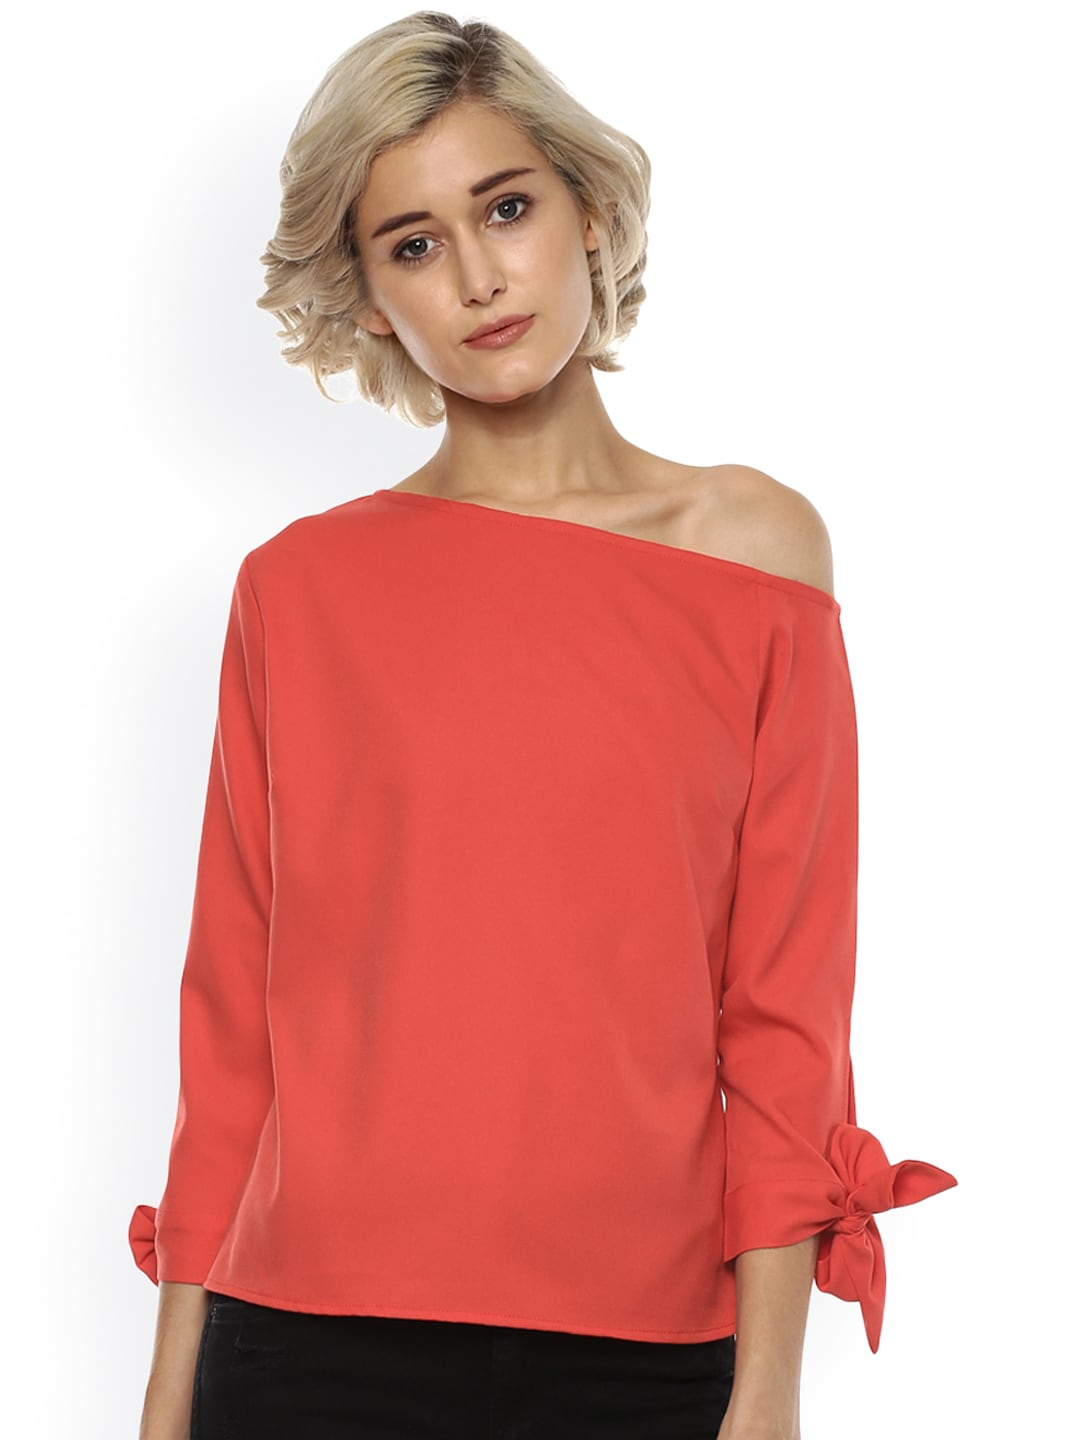 cc43d43881b052 Harpa - Buy Harpa Clothing   Apparels Online in India